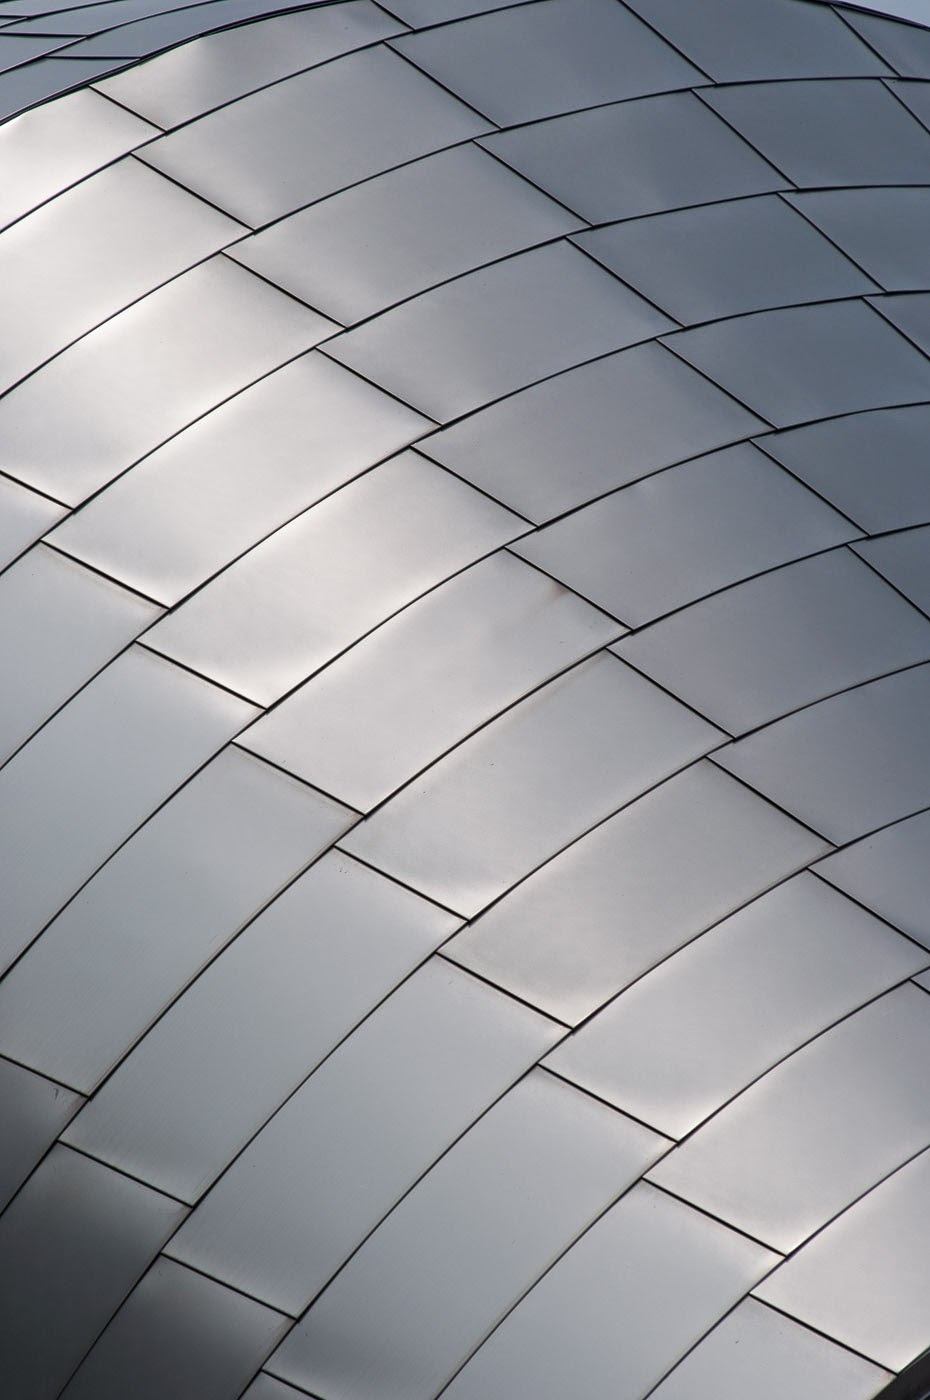 Abstract, abstraction, abstractional , architect, architecture , architectural, detail, building, design, frank gehry, gehry, gehry partners, Chicago, façade, millennium park, jay pritzker pavilion, postmodern, tim macauley,